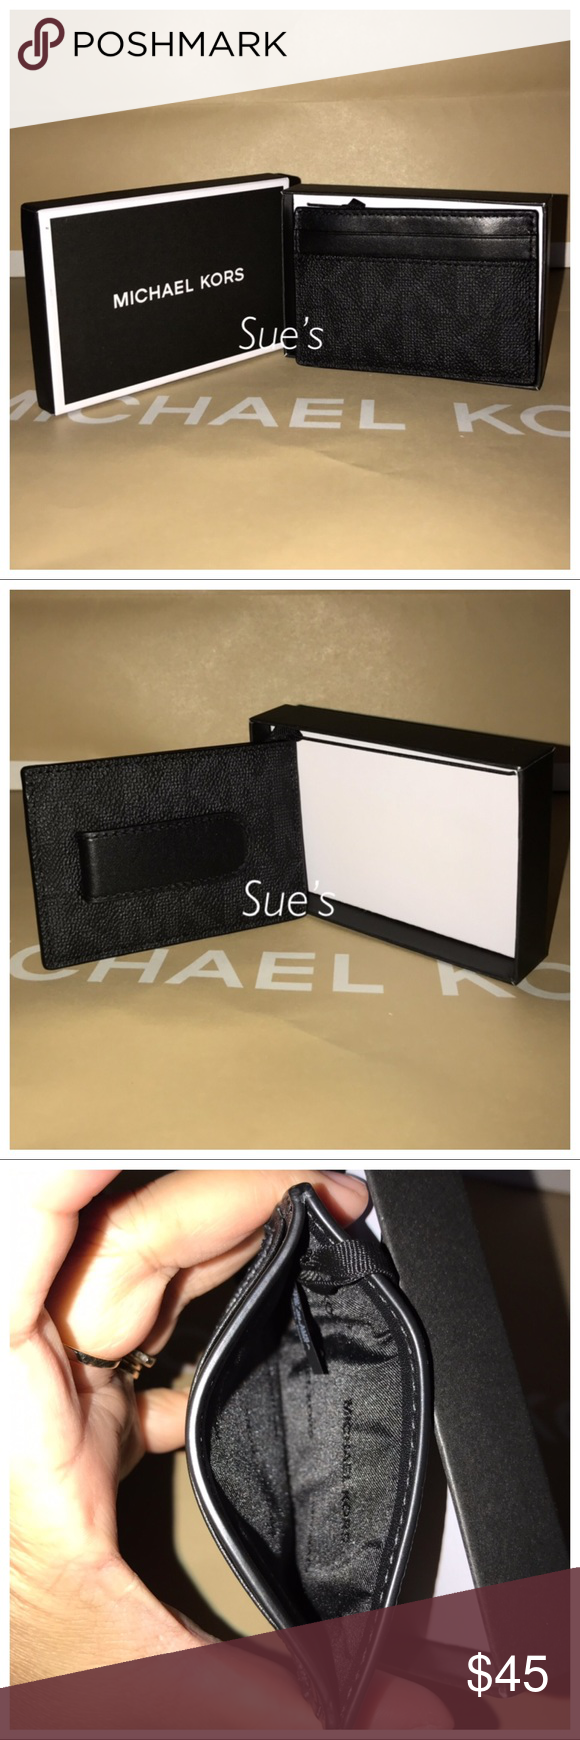 3054649c69f5 NWT MK Mens Card Case holder with money clip-Black NIB MICHAEL KORS JET SET  MENS CARD CASE MONEY CLIP MK BLACK WALLET $58 Material : Signature PVC /  Leather ...